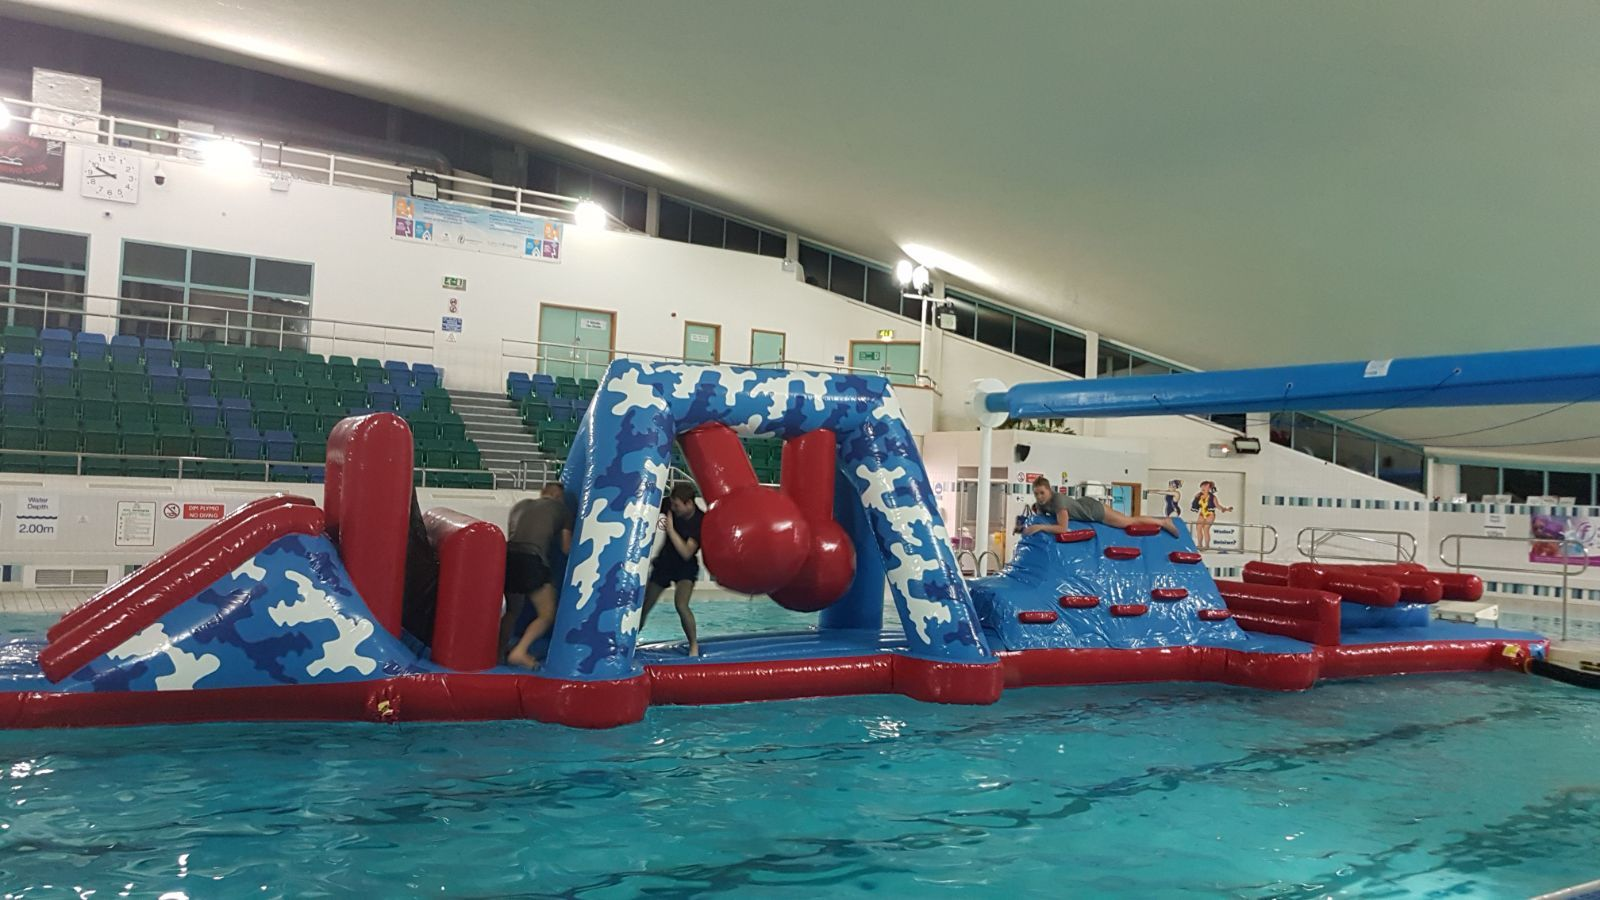 Inflatable Water Obstacle Course Race For Swimming Pool Obstacle